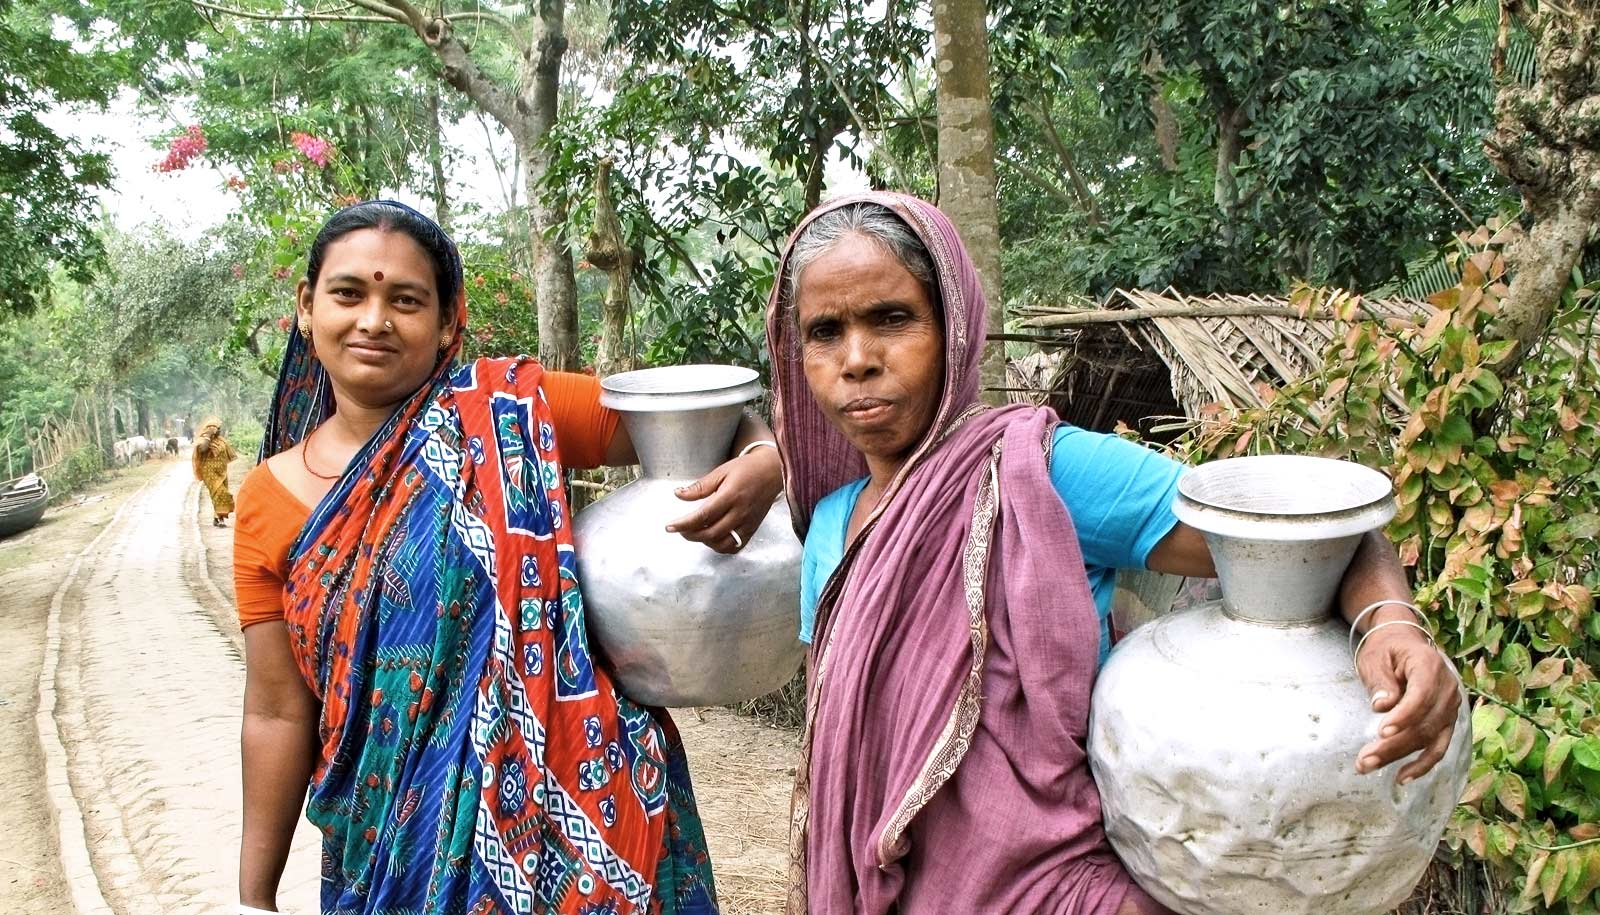 'Clean' drinking water in Bangladesh is often unsafe